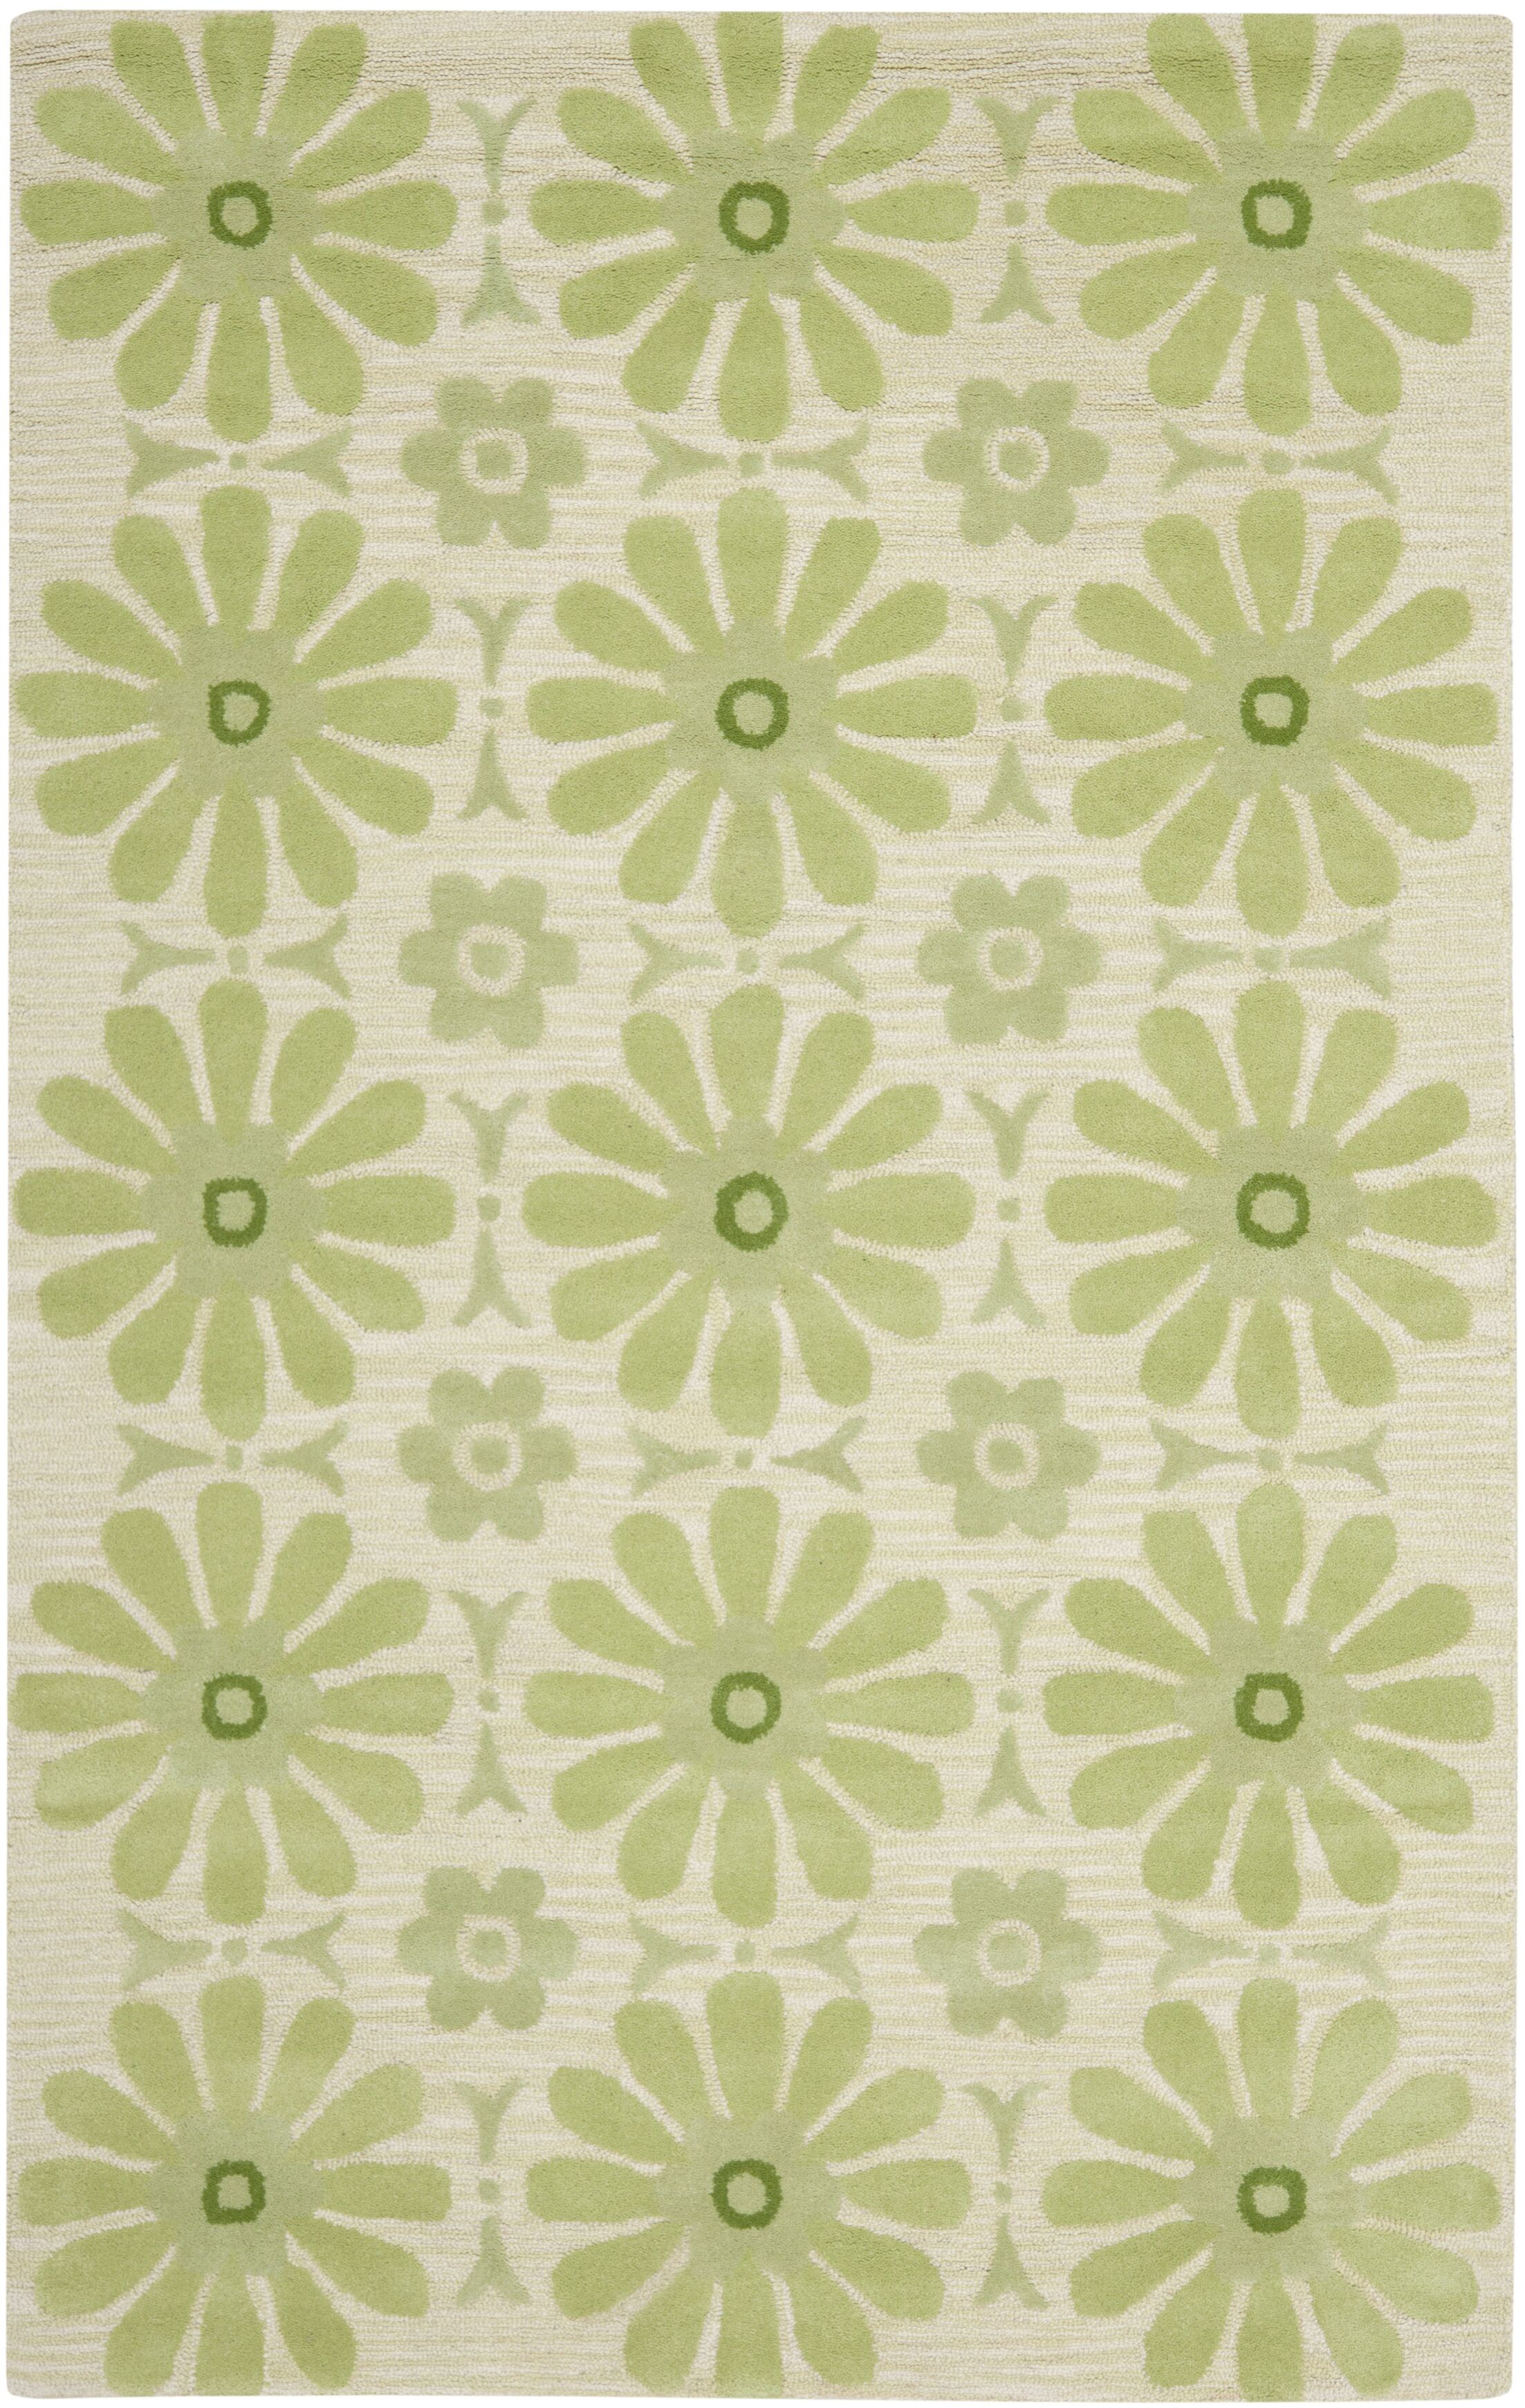 Claro Beige/Green Area Rug Rug Size: Rectangle 5' x 8'